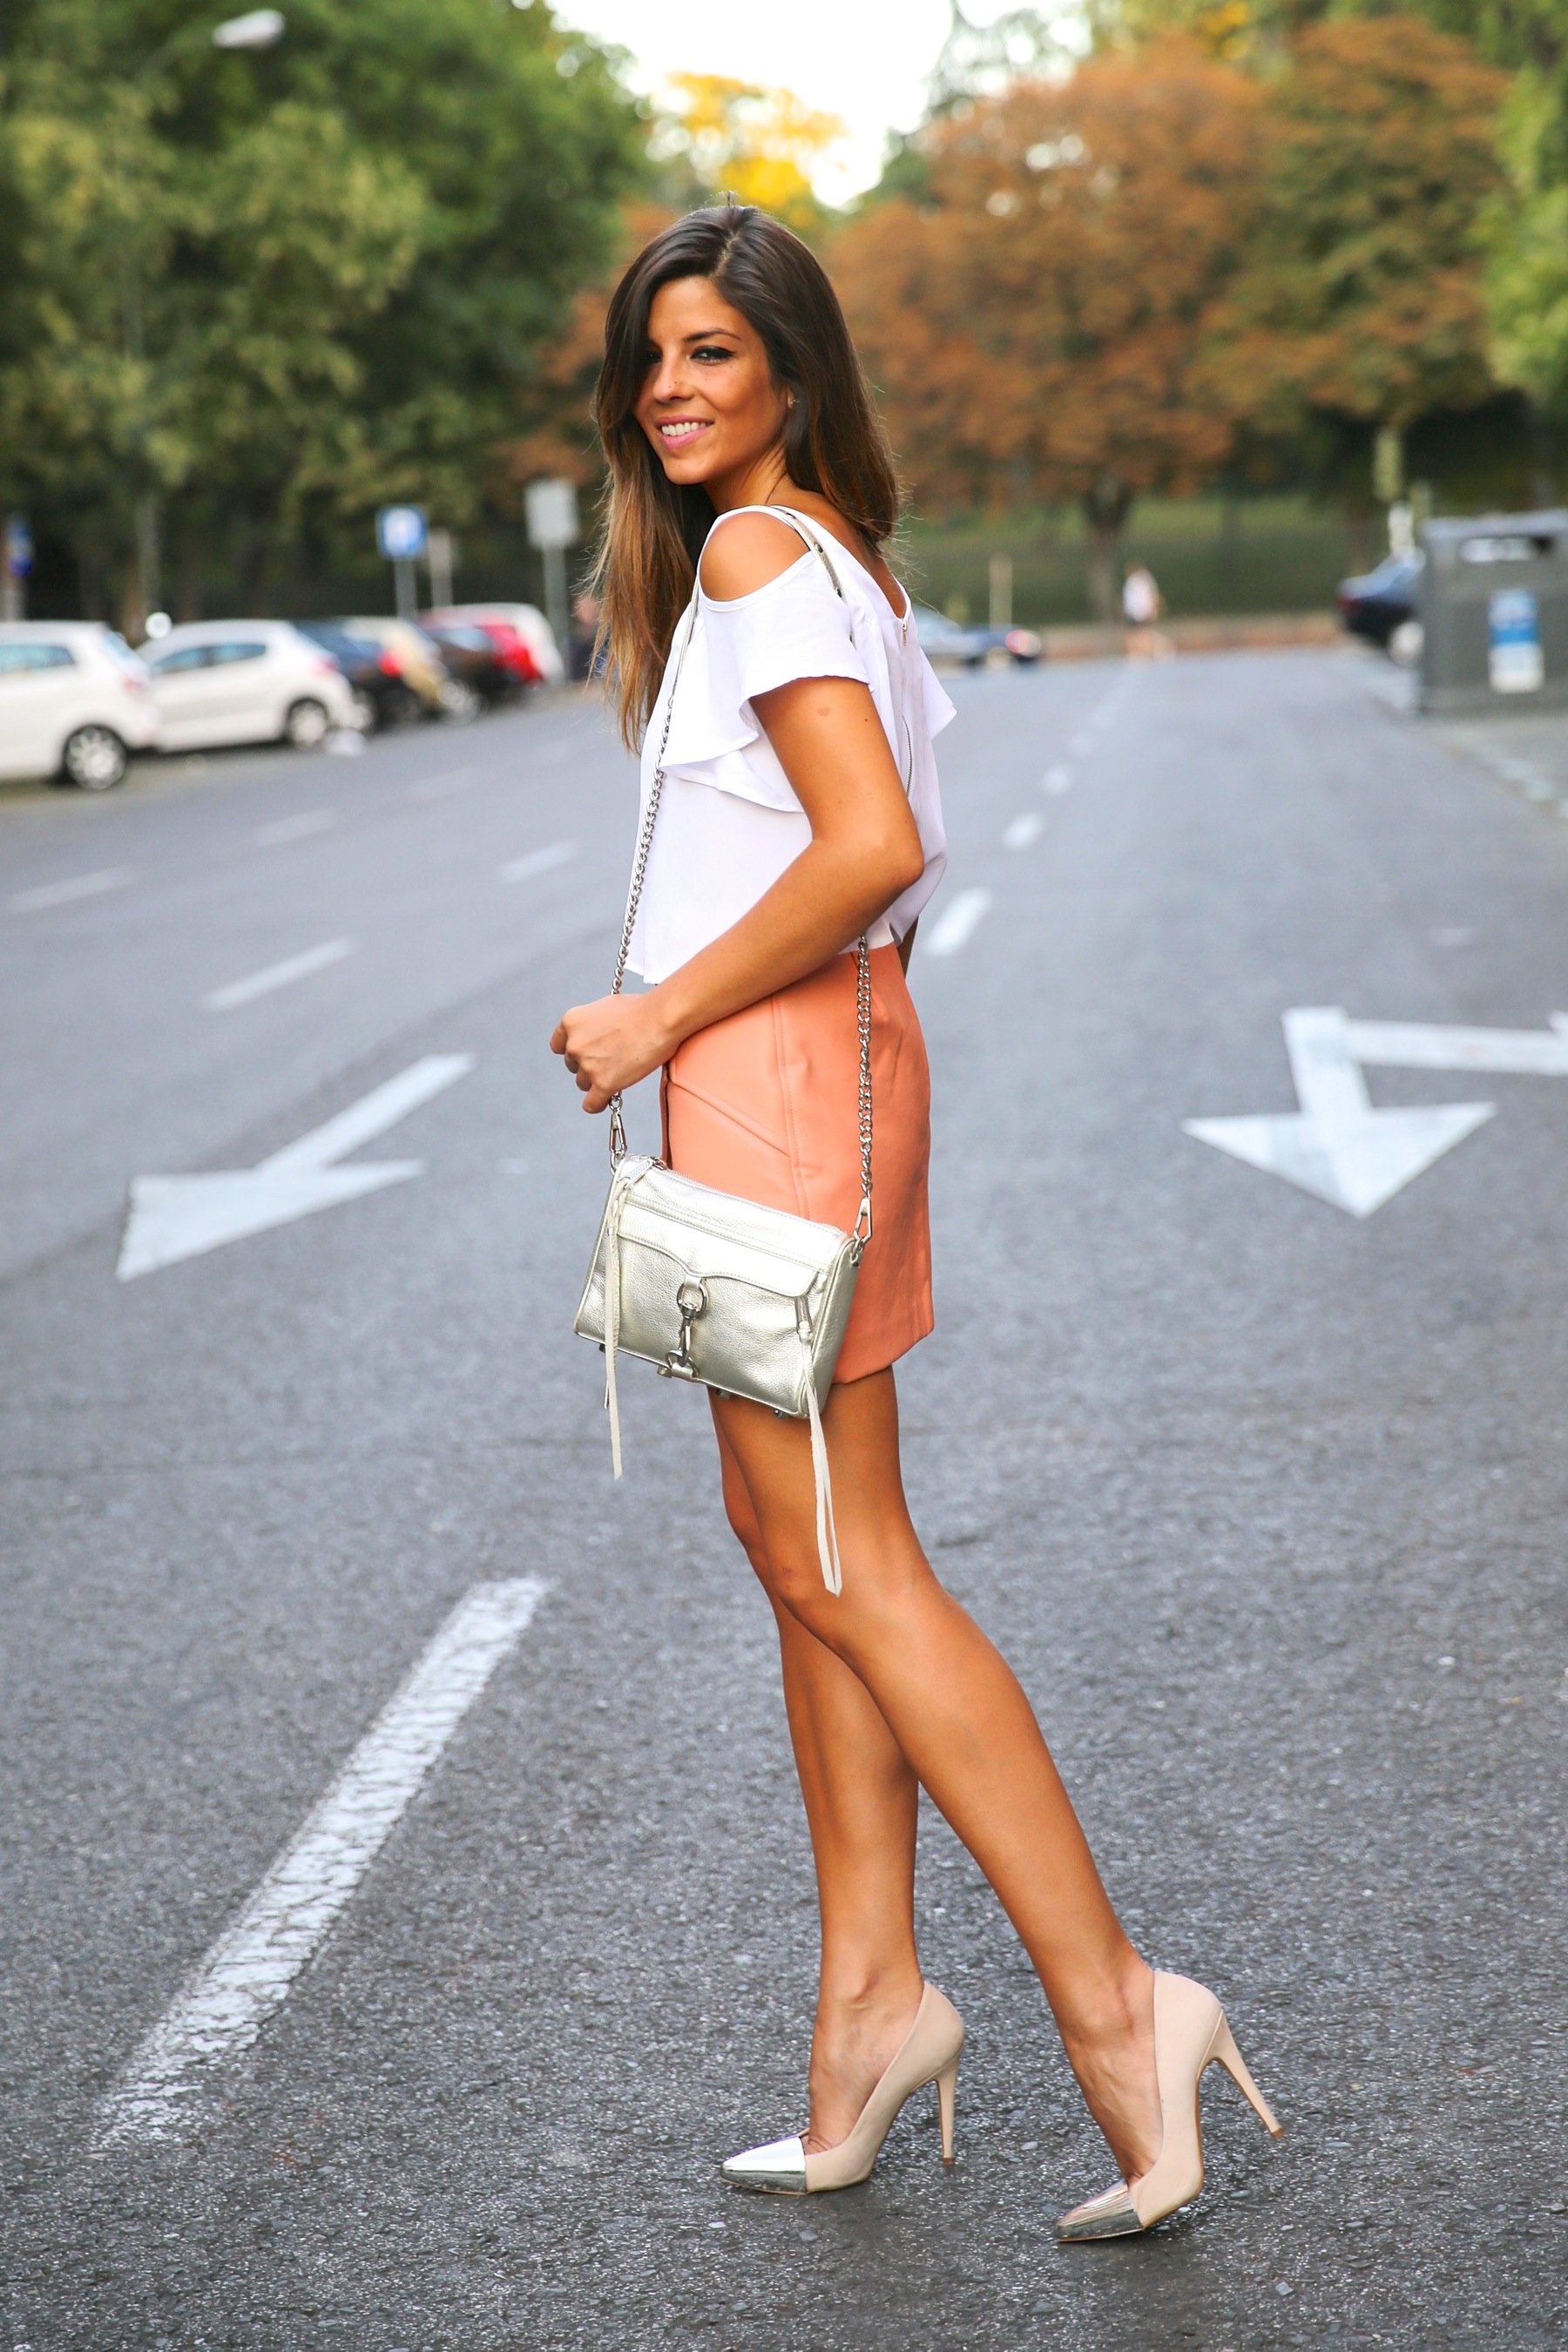 trendy_taste-look-outfit-street_style-ootd-blog-blogger-fashion_spain-moda_españa-madrid-silver_stilettos-punta_plata-estiletos-falda_coral-coral_skirt-top-16